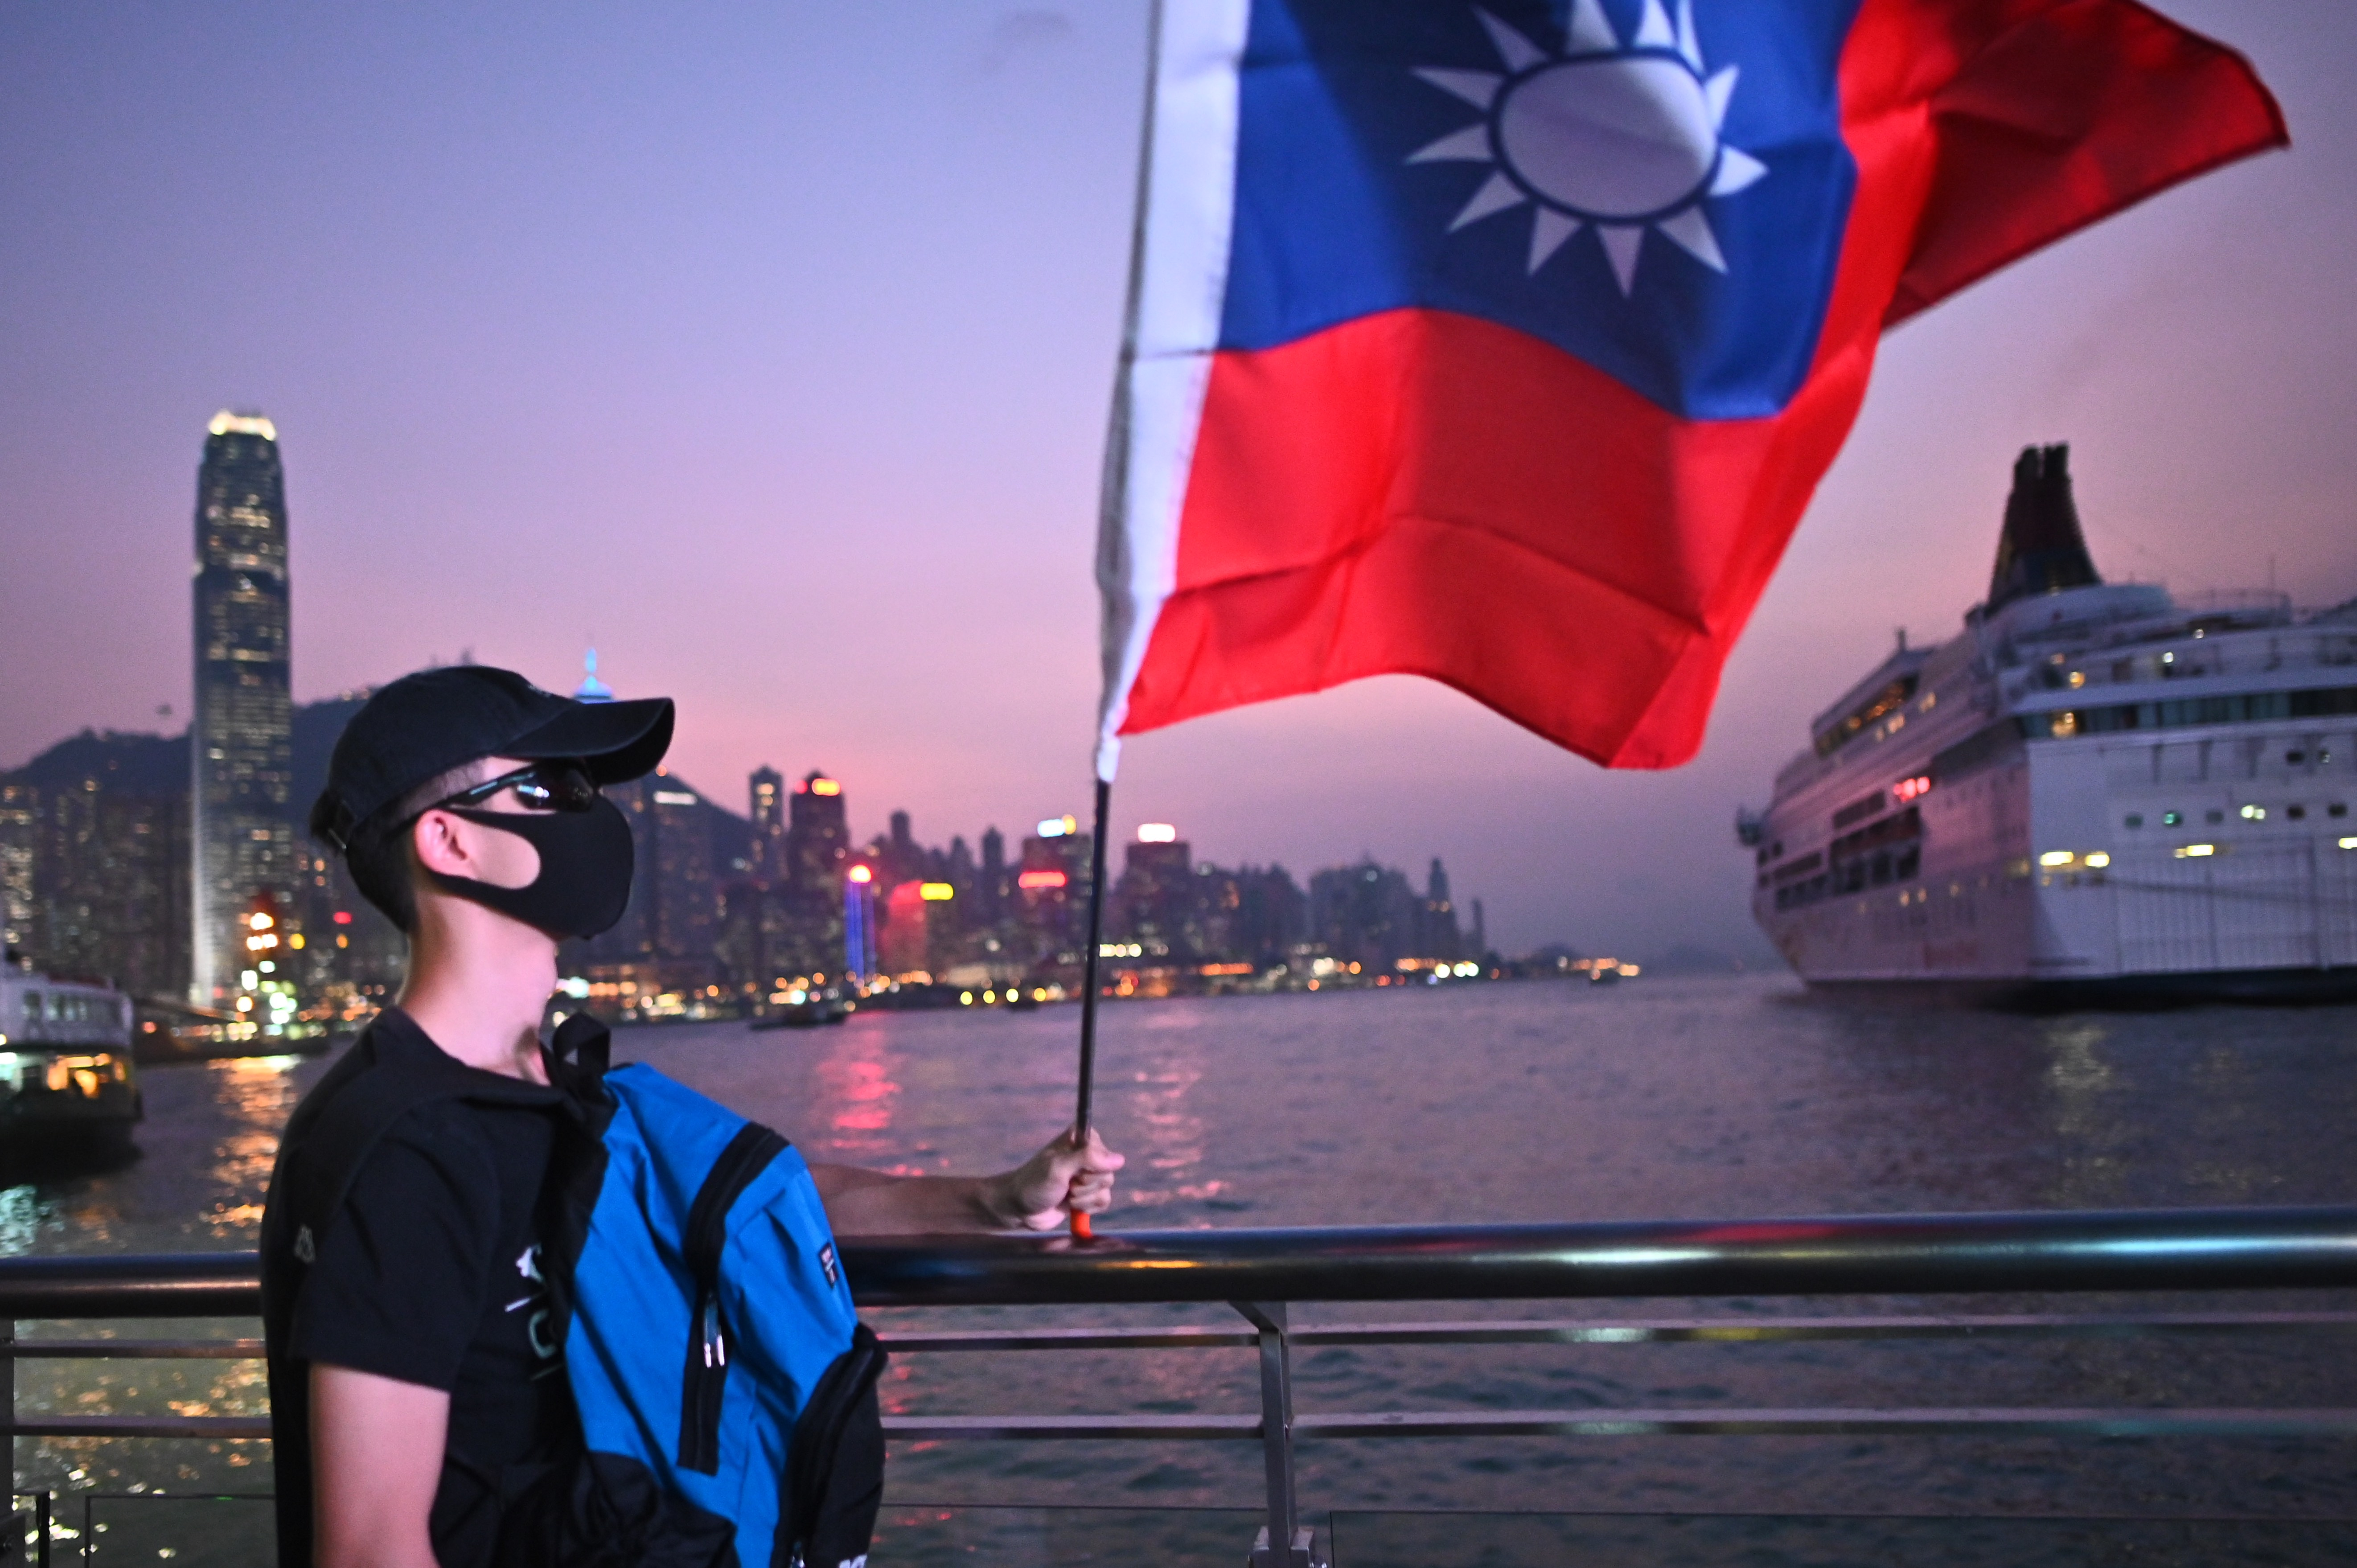 A man wearing a mask holds a Taiwanese flag as he joins others at a rally to mark Taiwan's National Day, in the Tsim Sha Tsui district in Hong Kong on October 10, 2019. - Taiwan's National Day, also called called Double-Ten in a reference to the nationalist Republic of China set up by Sun Yat Sen on October 10, 1911, ending centuries of Chinese dynastic rule. (Photo by Philip FONG / AFP) (Photo by PHILIP FONG/AFP via Getty Images)